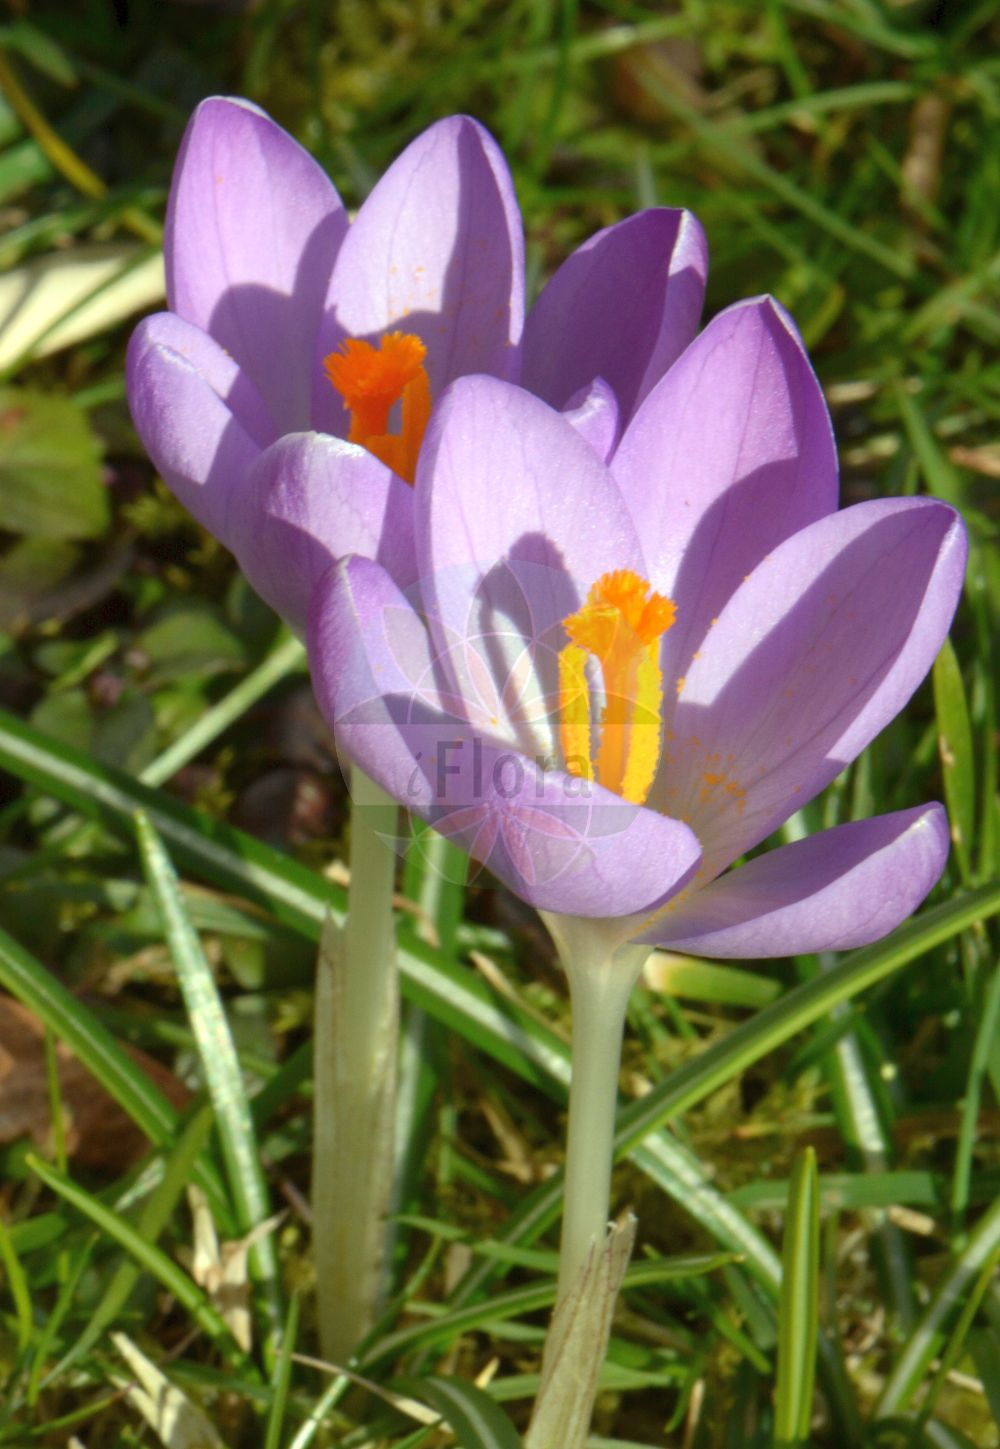 Foto von Crocus vernus (Fruehlings-Krokus - Spring Crocus). Das Foto wurde in aufgenommen. ---- Photo of Crocus vernus (Fruehlings-Krokus - Spring Crocus).The picture was taken in . (Crocus vernus,Fruehlings-Krokus,Spring Crocus,Purple Crocus,Dutch Crocus,Woodland Crocus,Crocus,Krokus,Crocus,Iridaceae,Schwertliliengewaechse,Iris family)